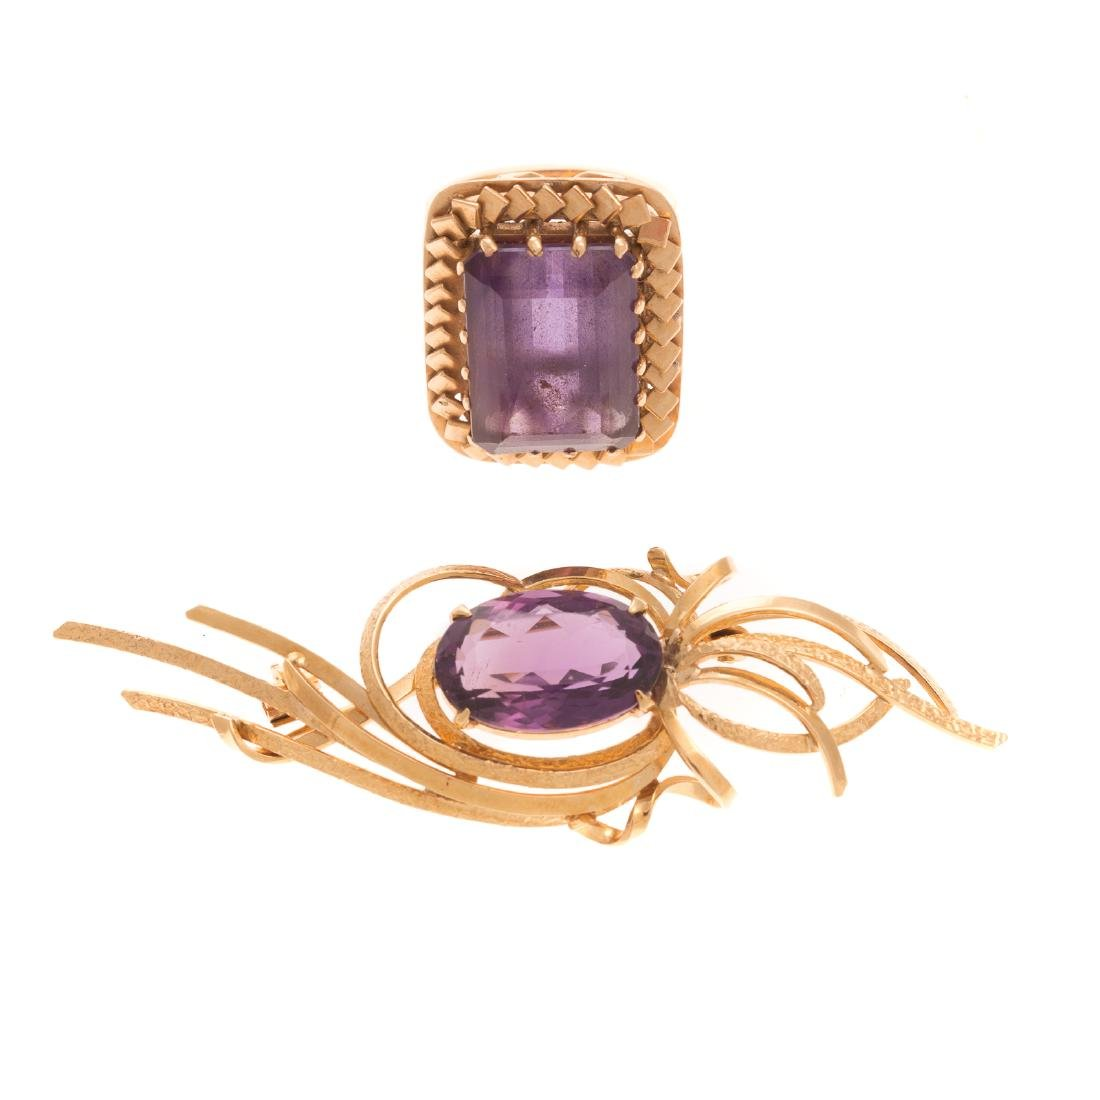 A Lady's Amethyst Ring and Brooch in Gold